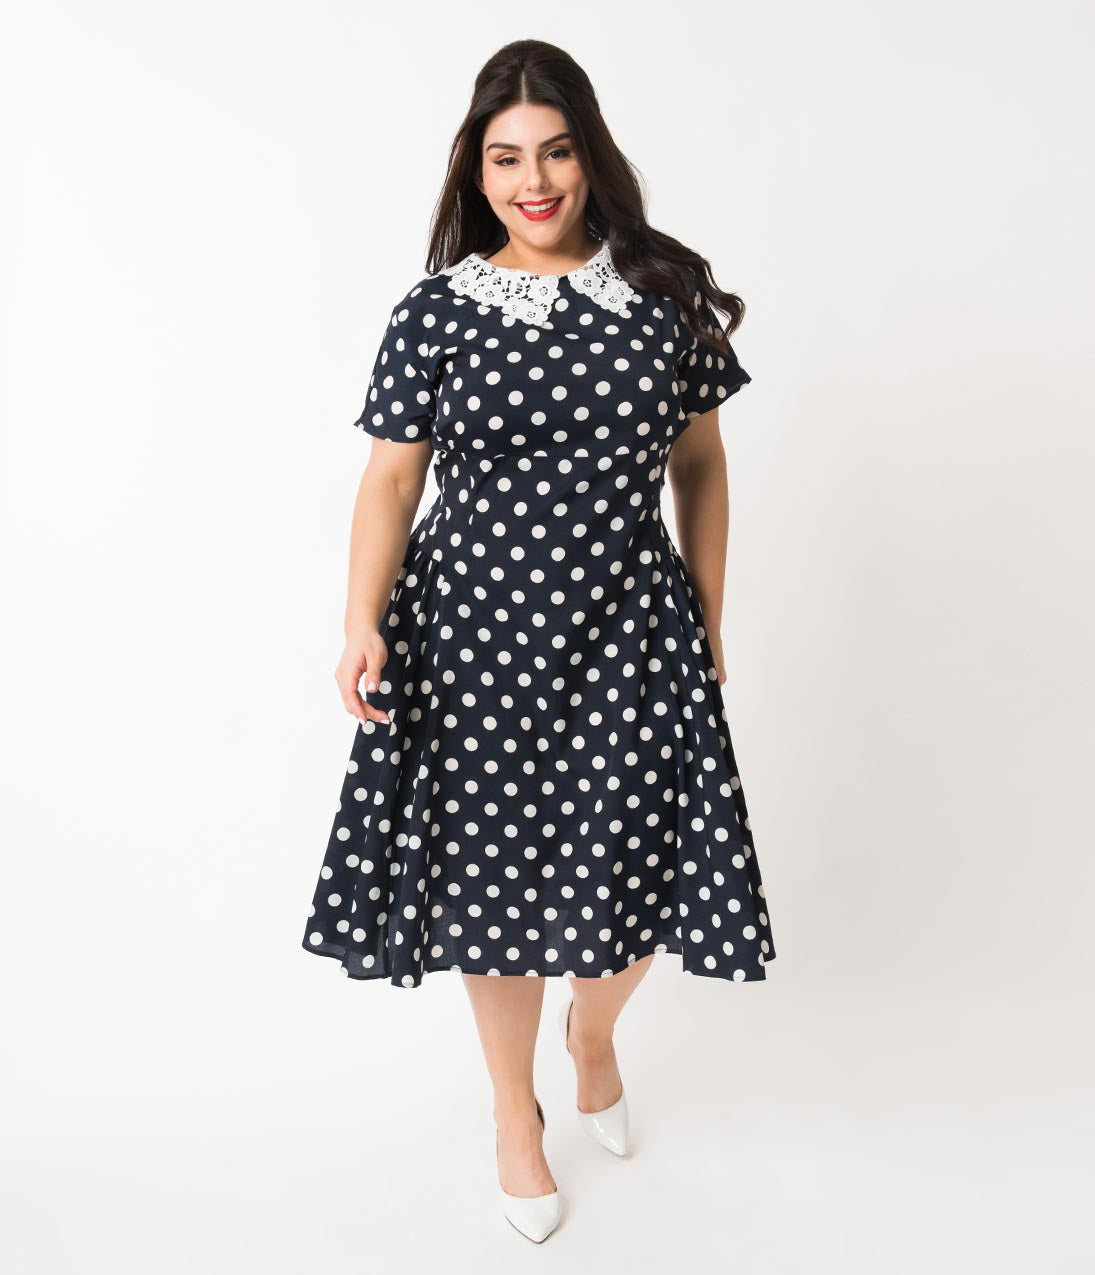 Swing Dance Clothing You Can Dance In Unique Vintage Plus Size 1940S Navy  White Polka Dot Lace Collar Margie Dress $41.00 AT vintagedancer.com